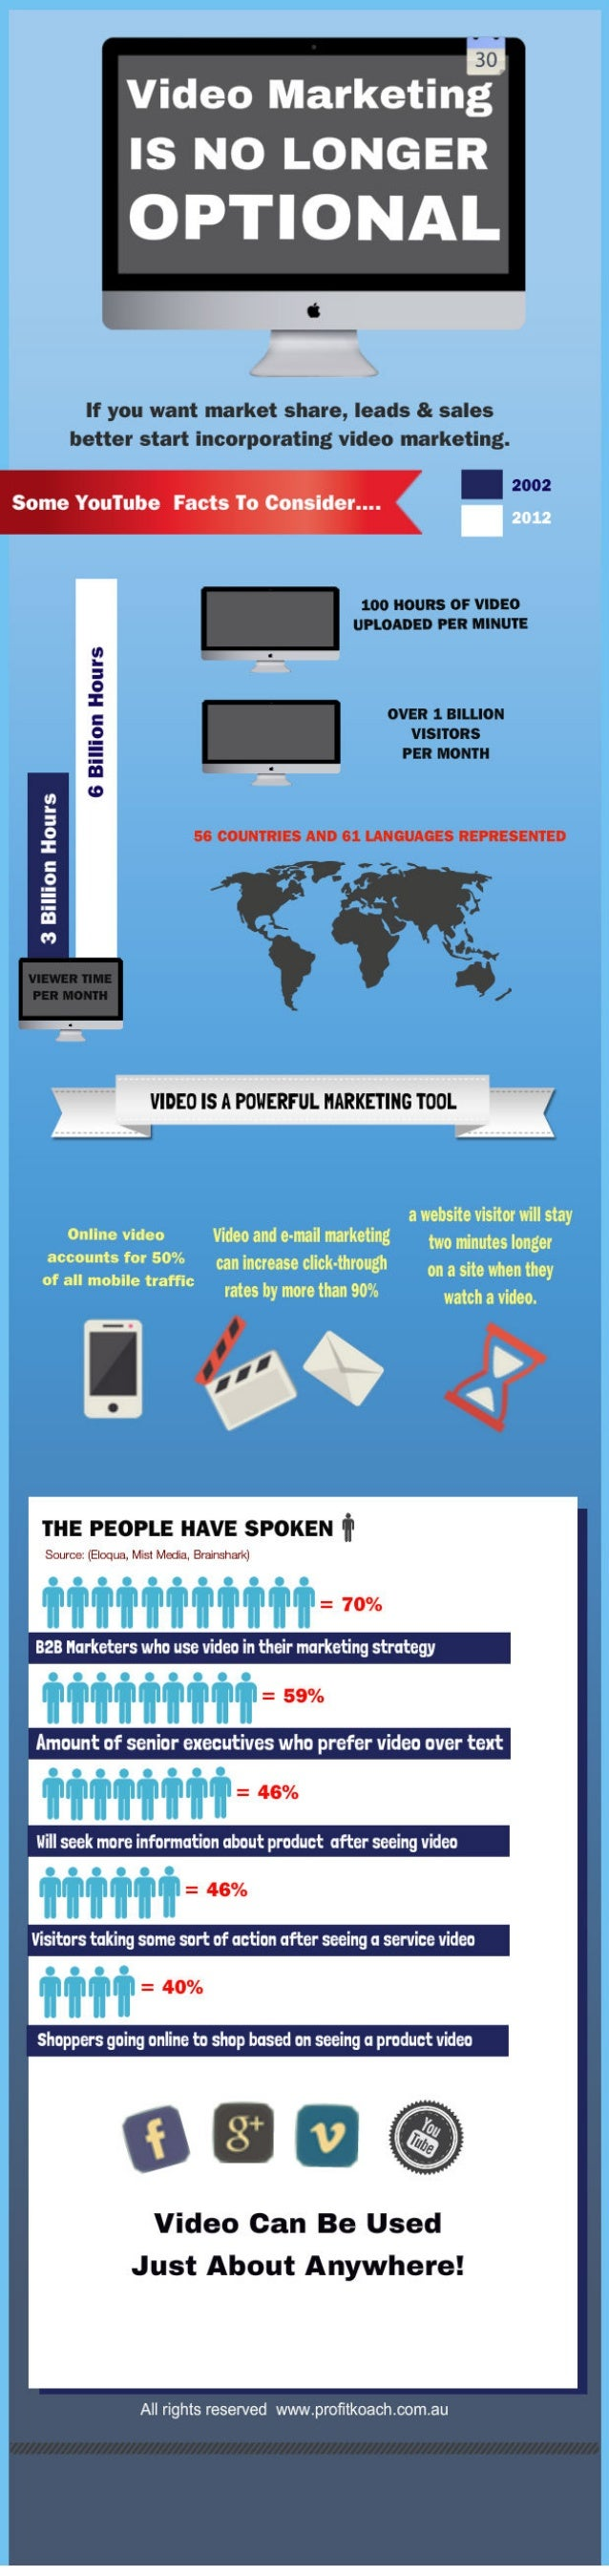 Small Business Needs Video Marketing